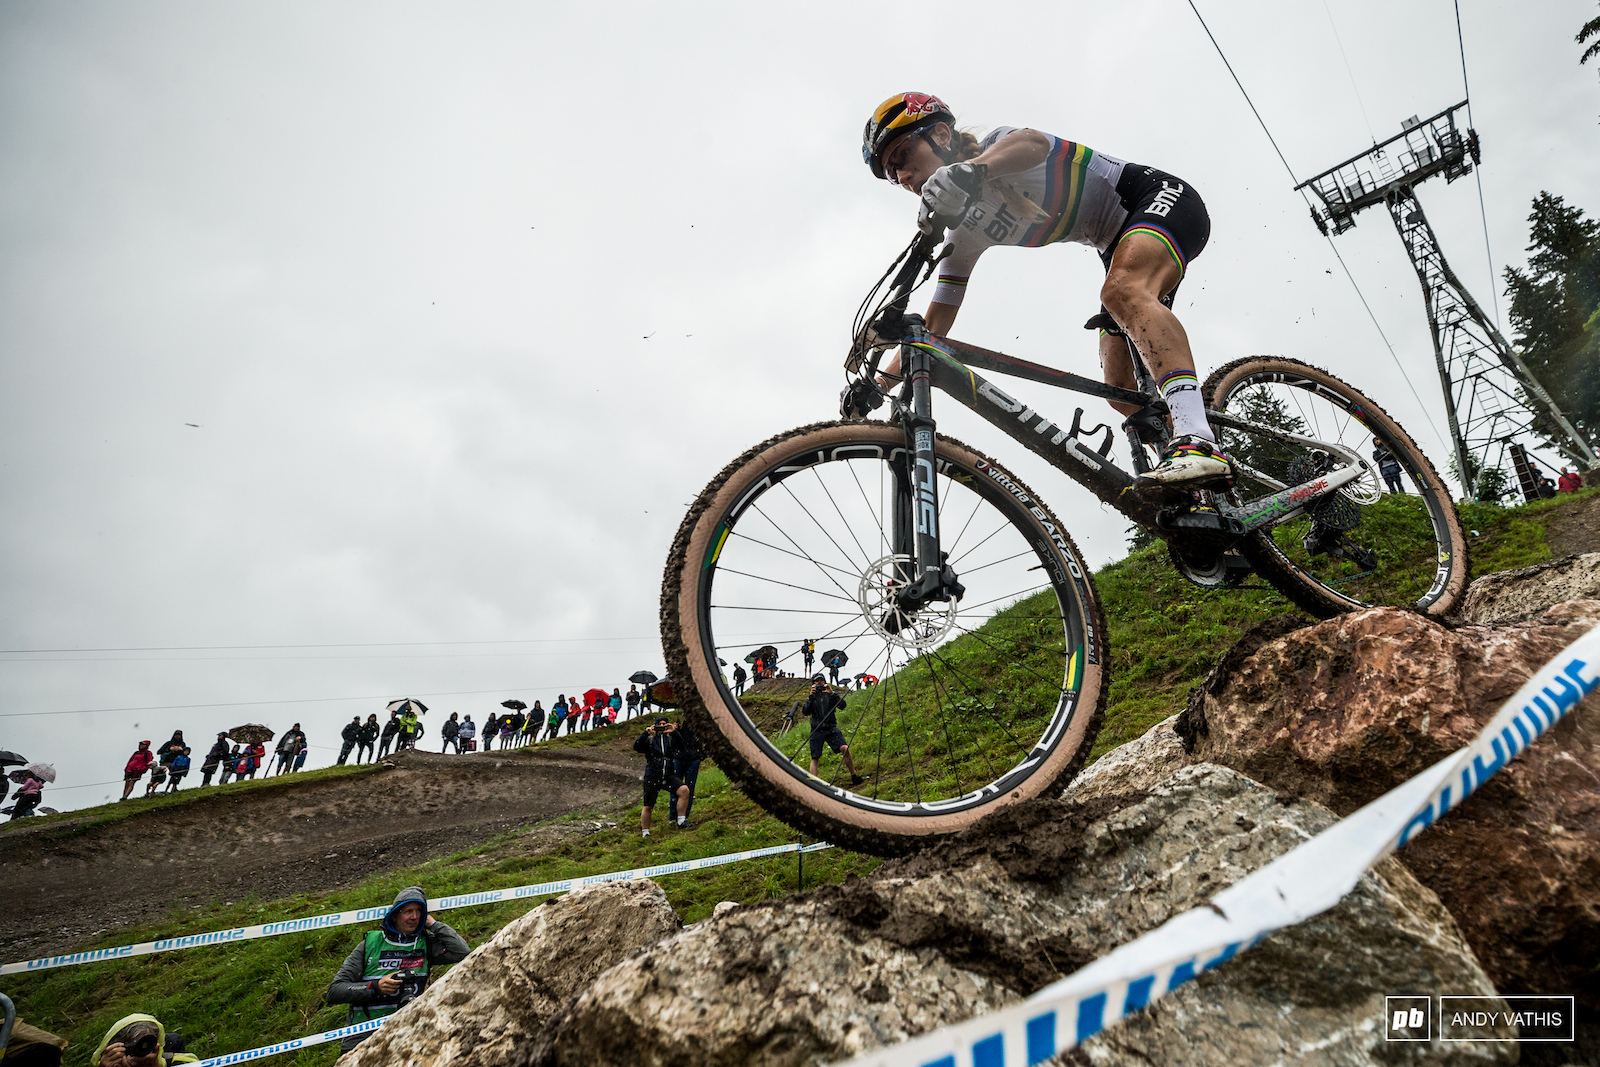 Pauline Ferrand Prevot doing the French proud and into the fourth spot on the podium.